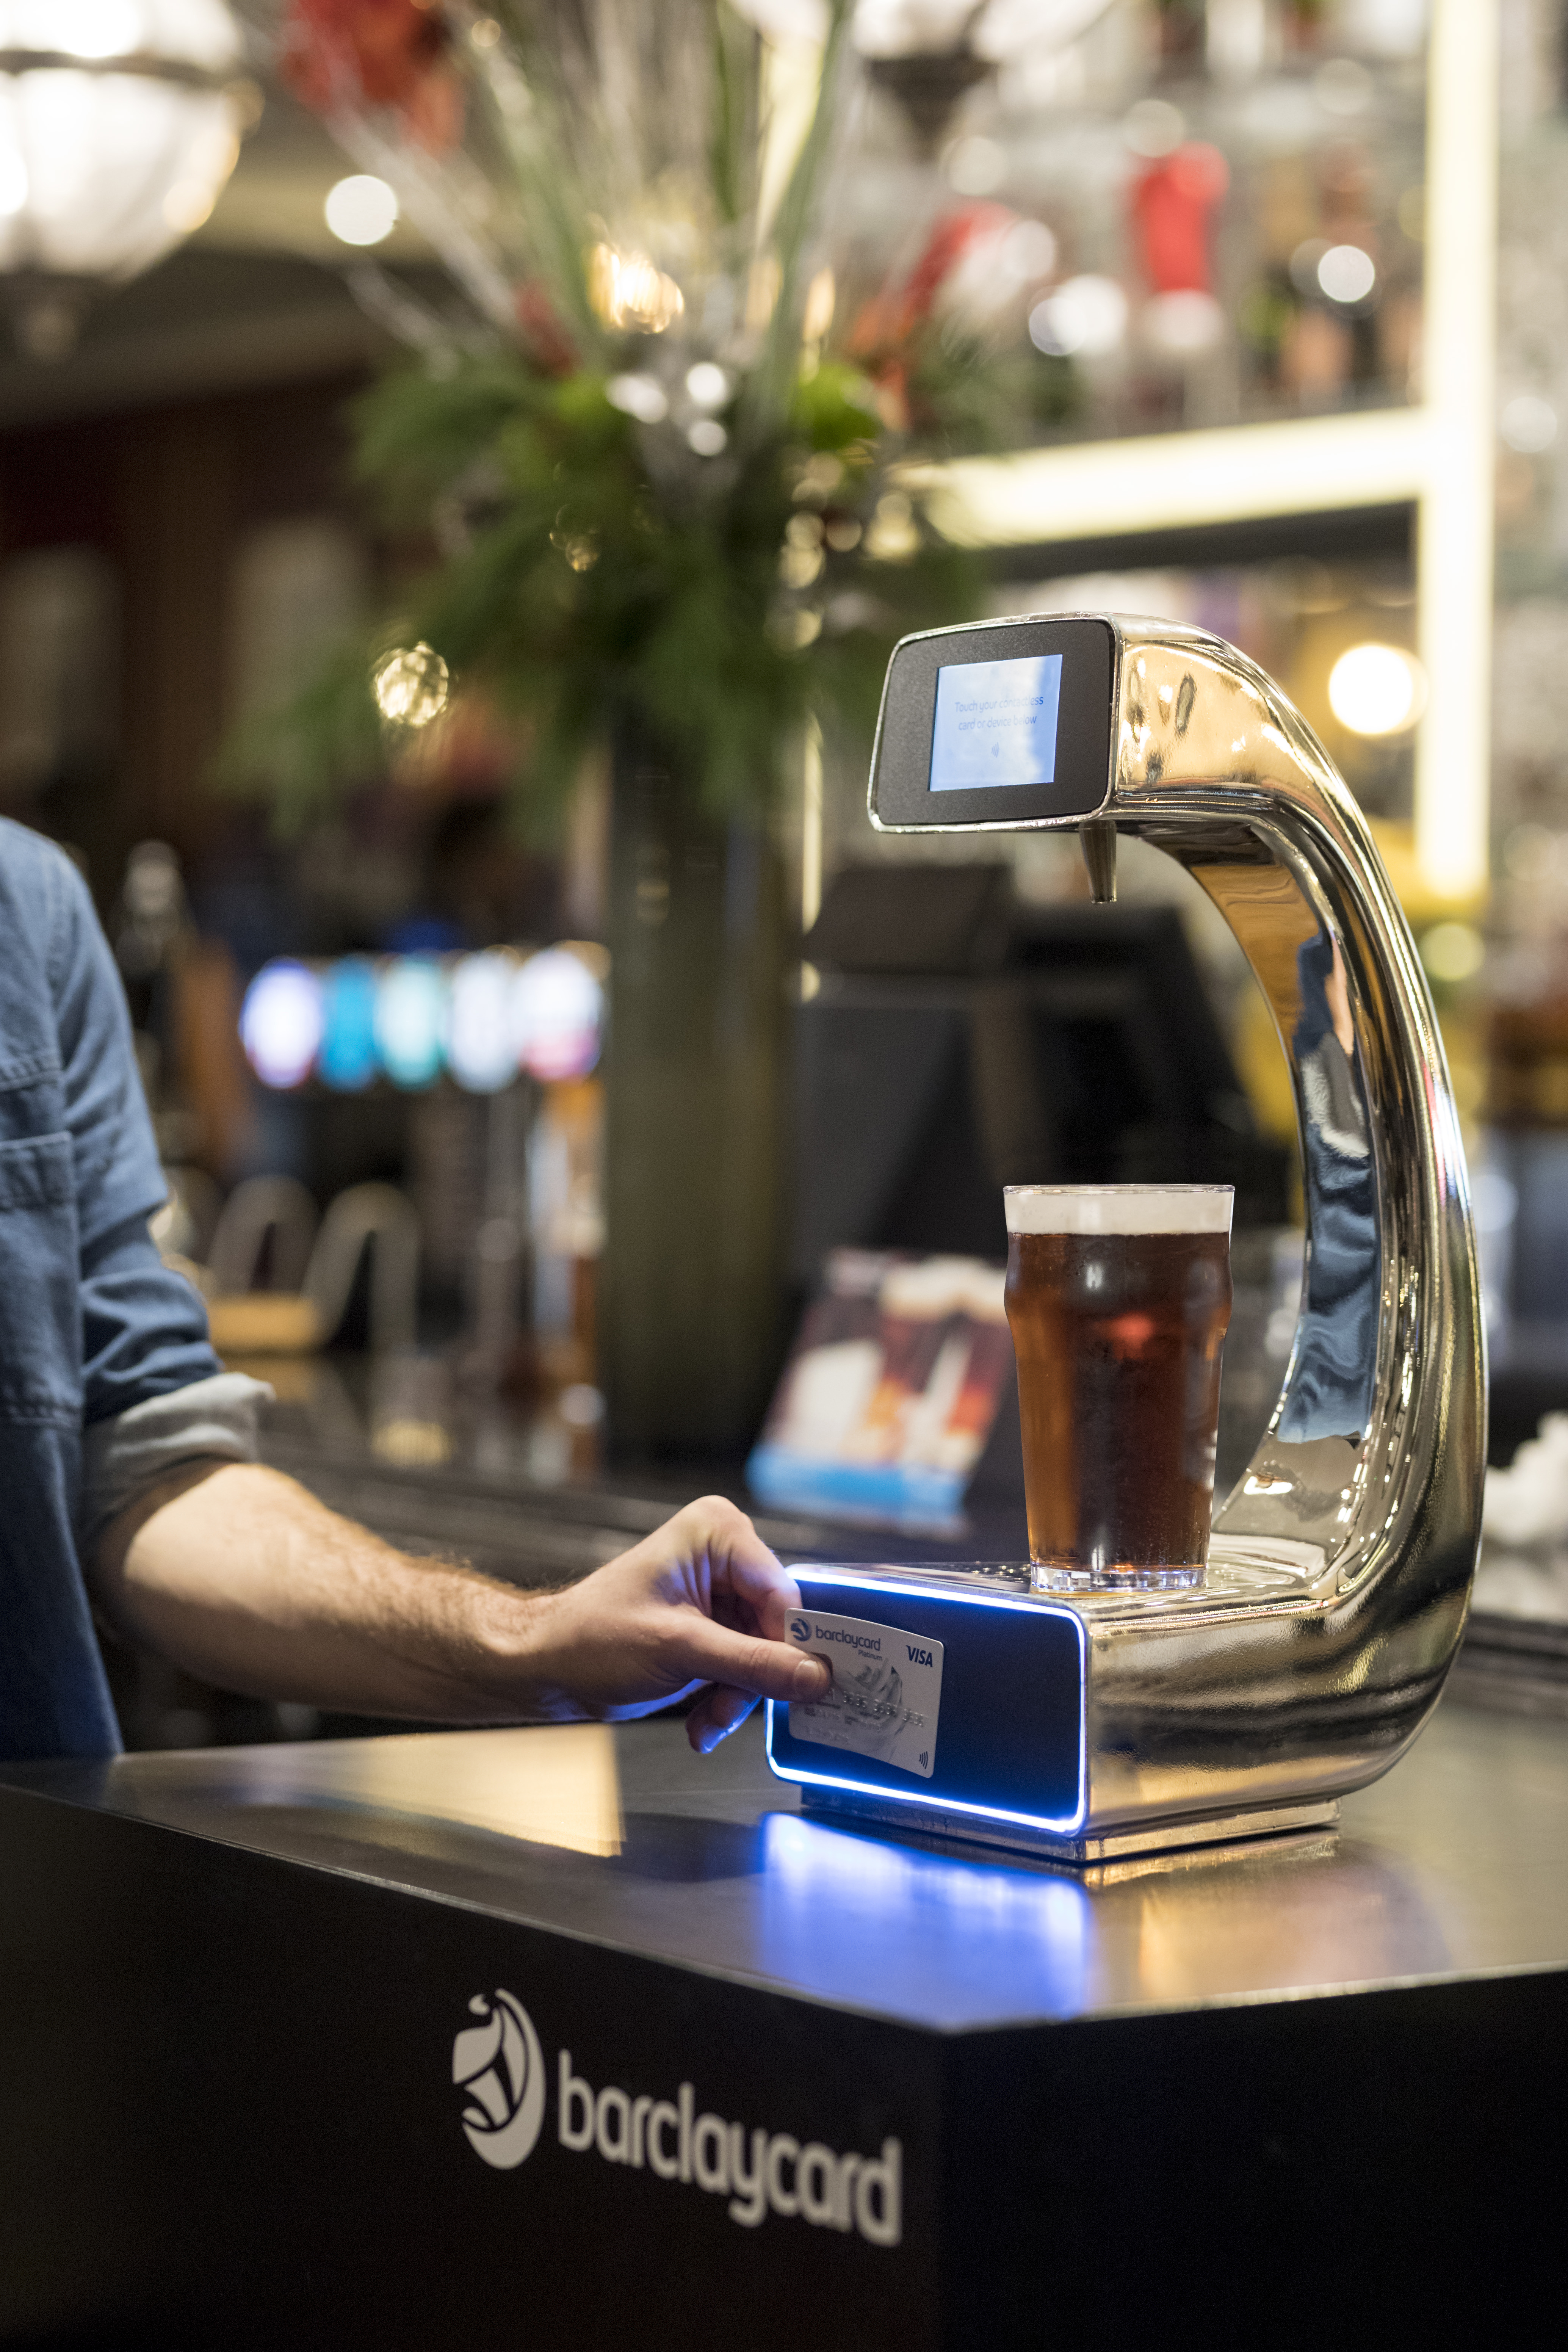 Contactless payment beer pump is a bespoke commission by Splinterworks